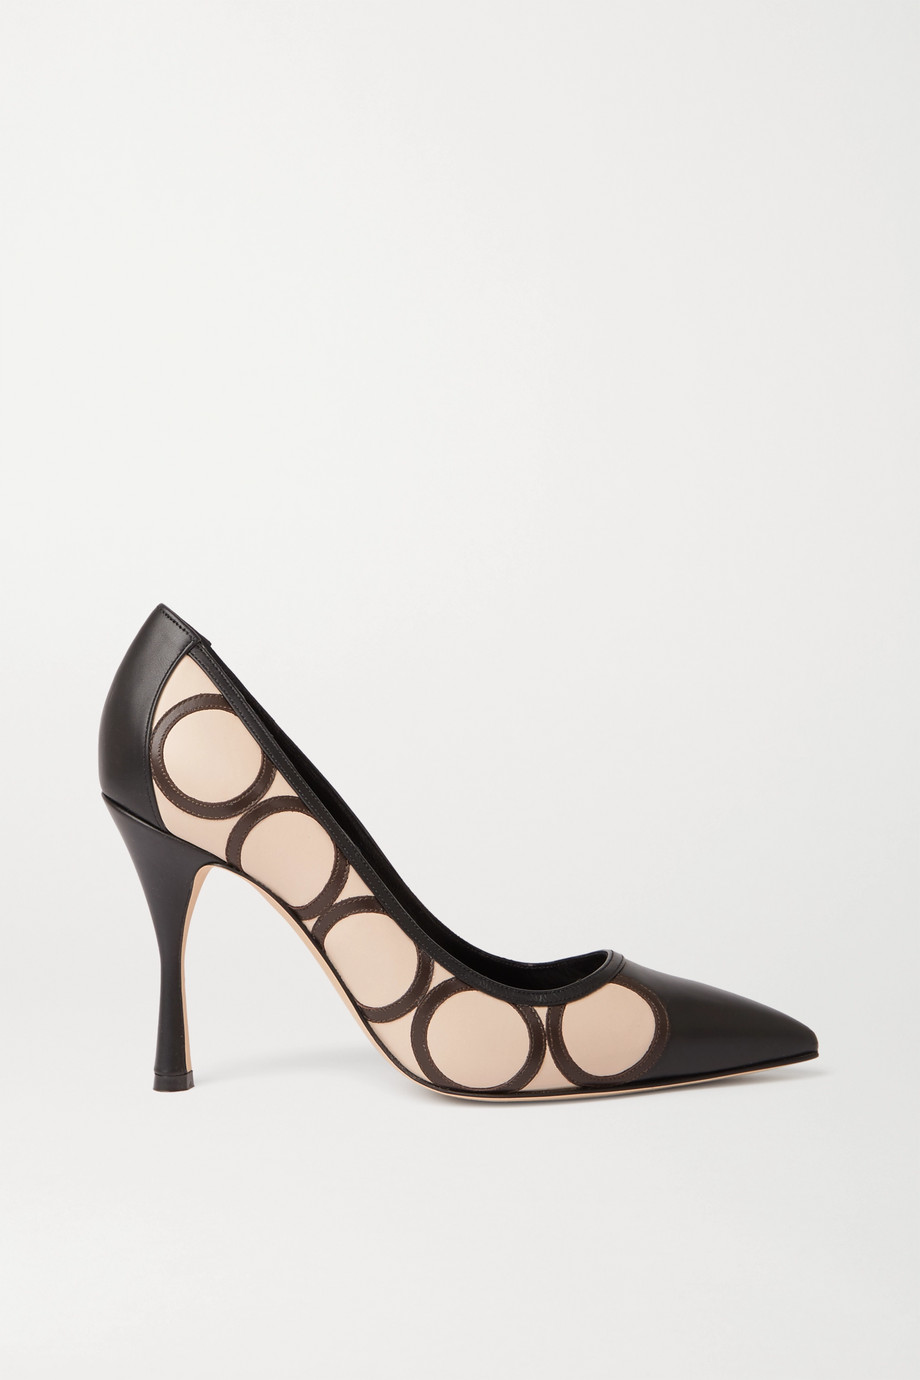 Manolo Blahnik Eustratios appliquéd leather pumps